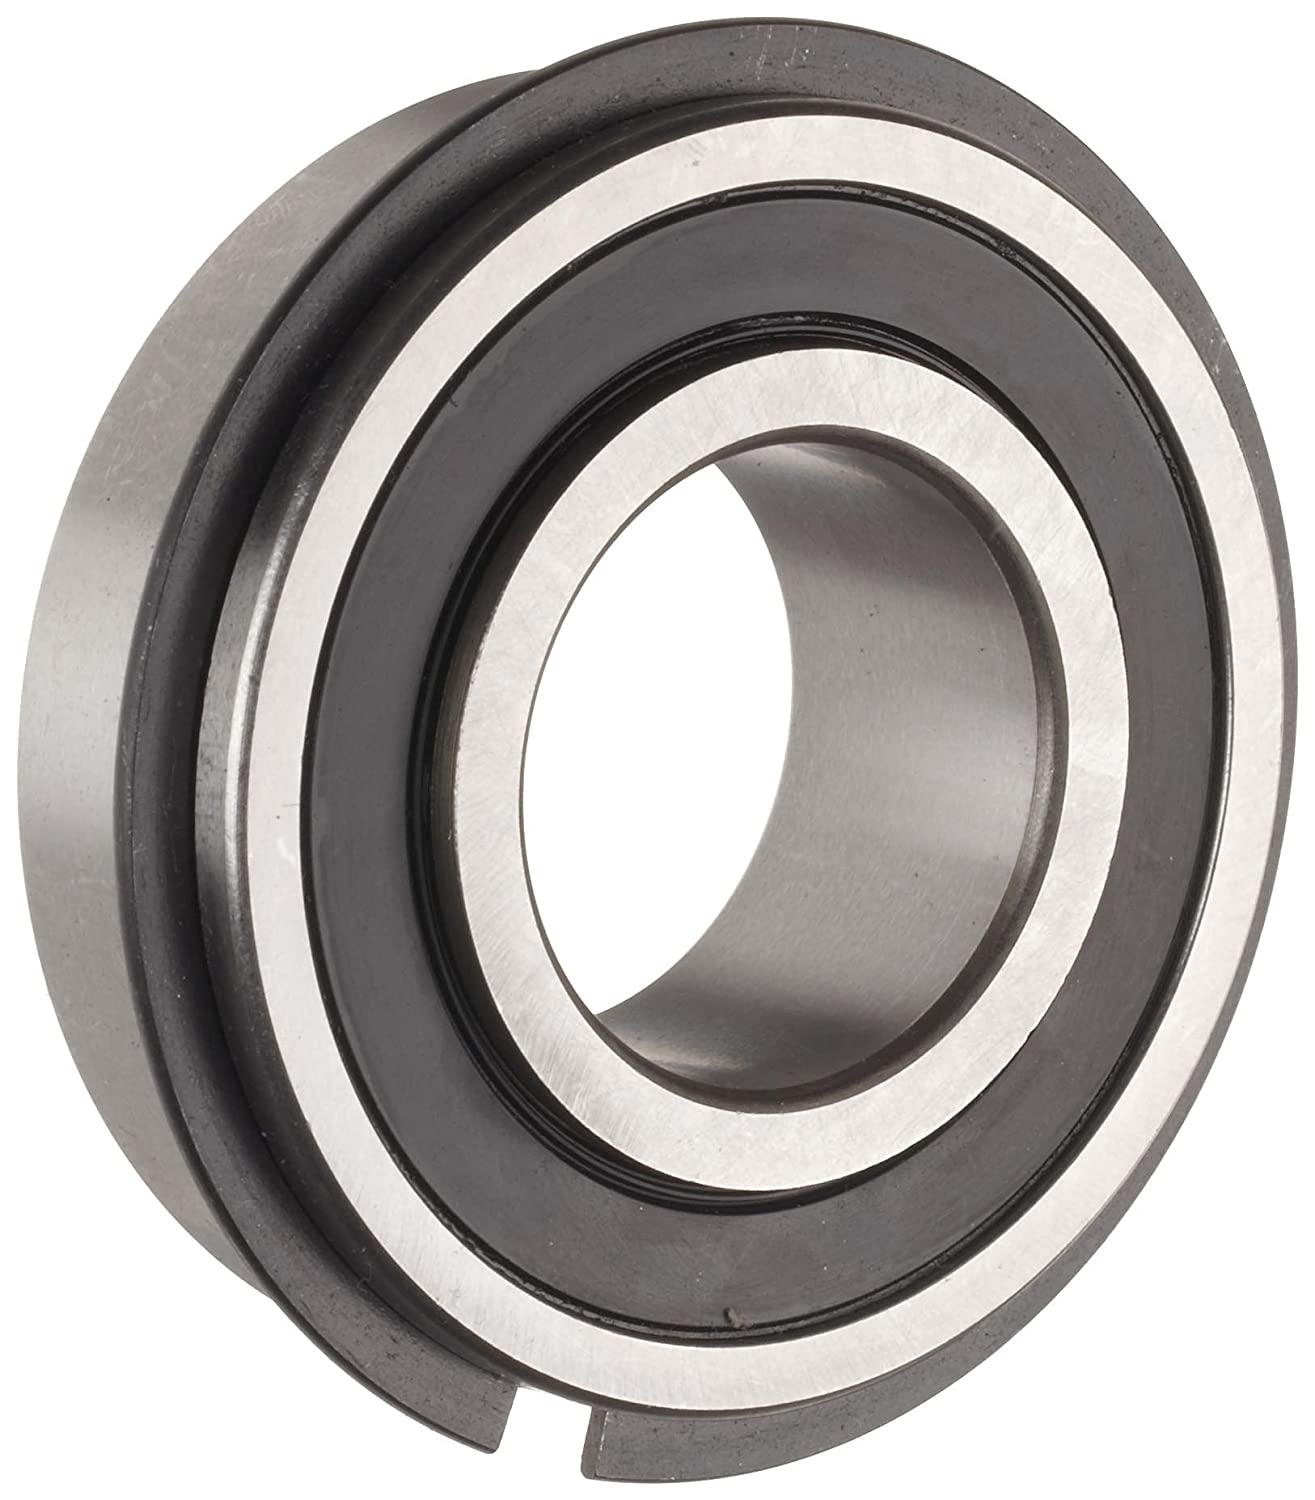 The General 7508 DLG Extra Light Extended Inner Ring Bearing, Double Sealed, With Snap Ring, Inch, 0.5' Bore, 1.75' OD, 3/4' Width, 707 lbs Static Load Capacity, 1366 lbs Dynamic Load Capacity 0.5 Bore 1.75 OD 3/4 Width